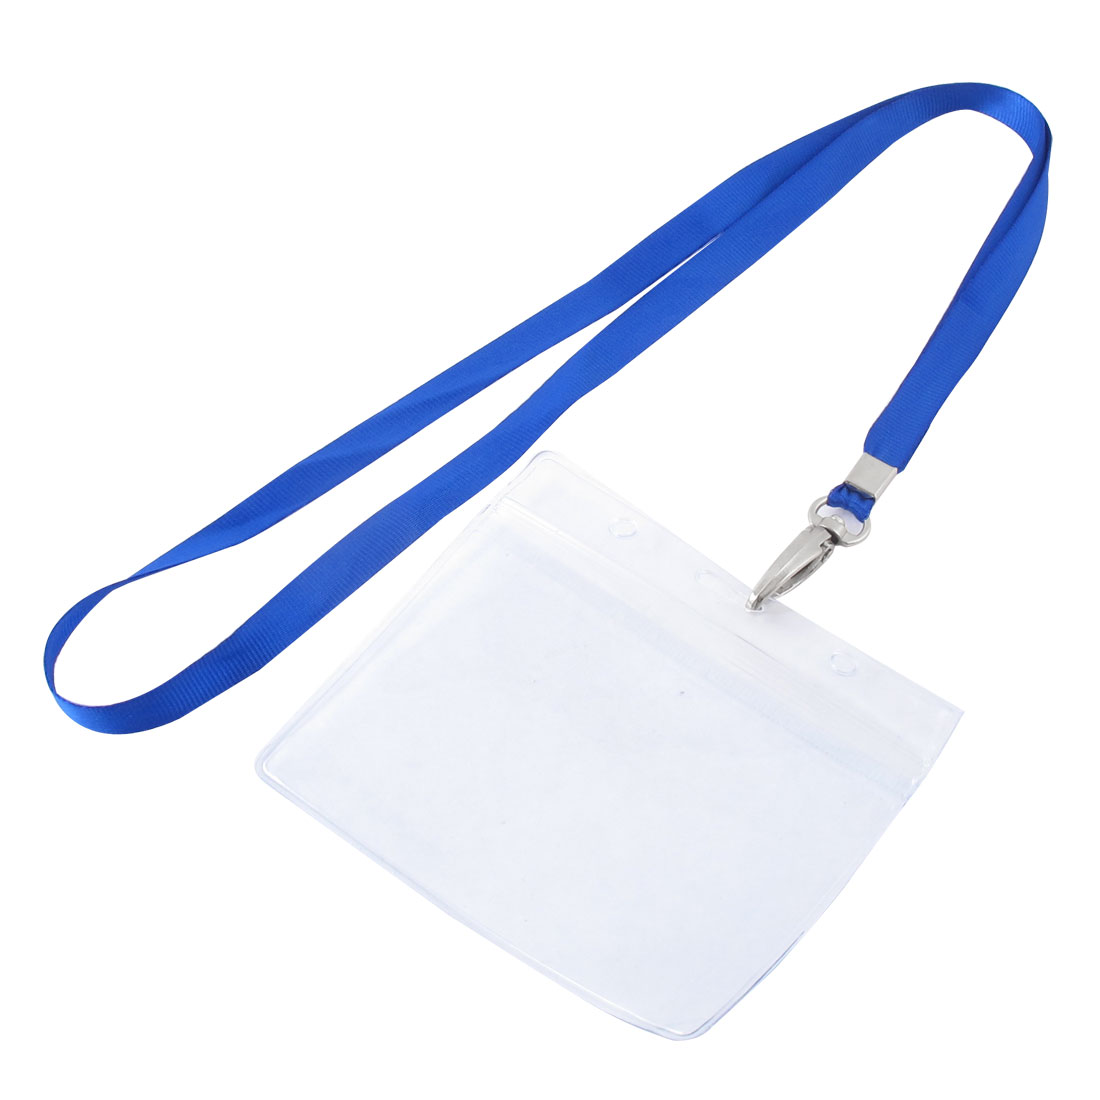 Lanyard Plastic Horizontal ID Office Employee Badge Card Holder Blue Clear